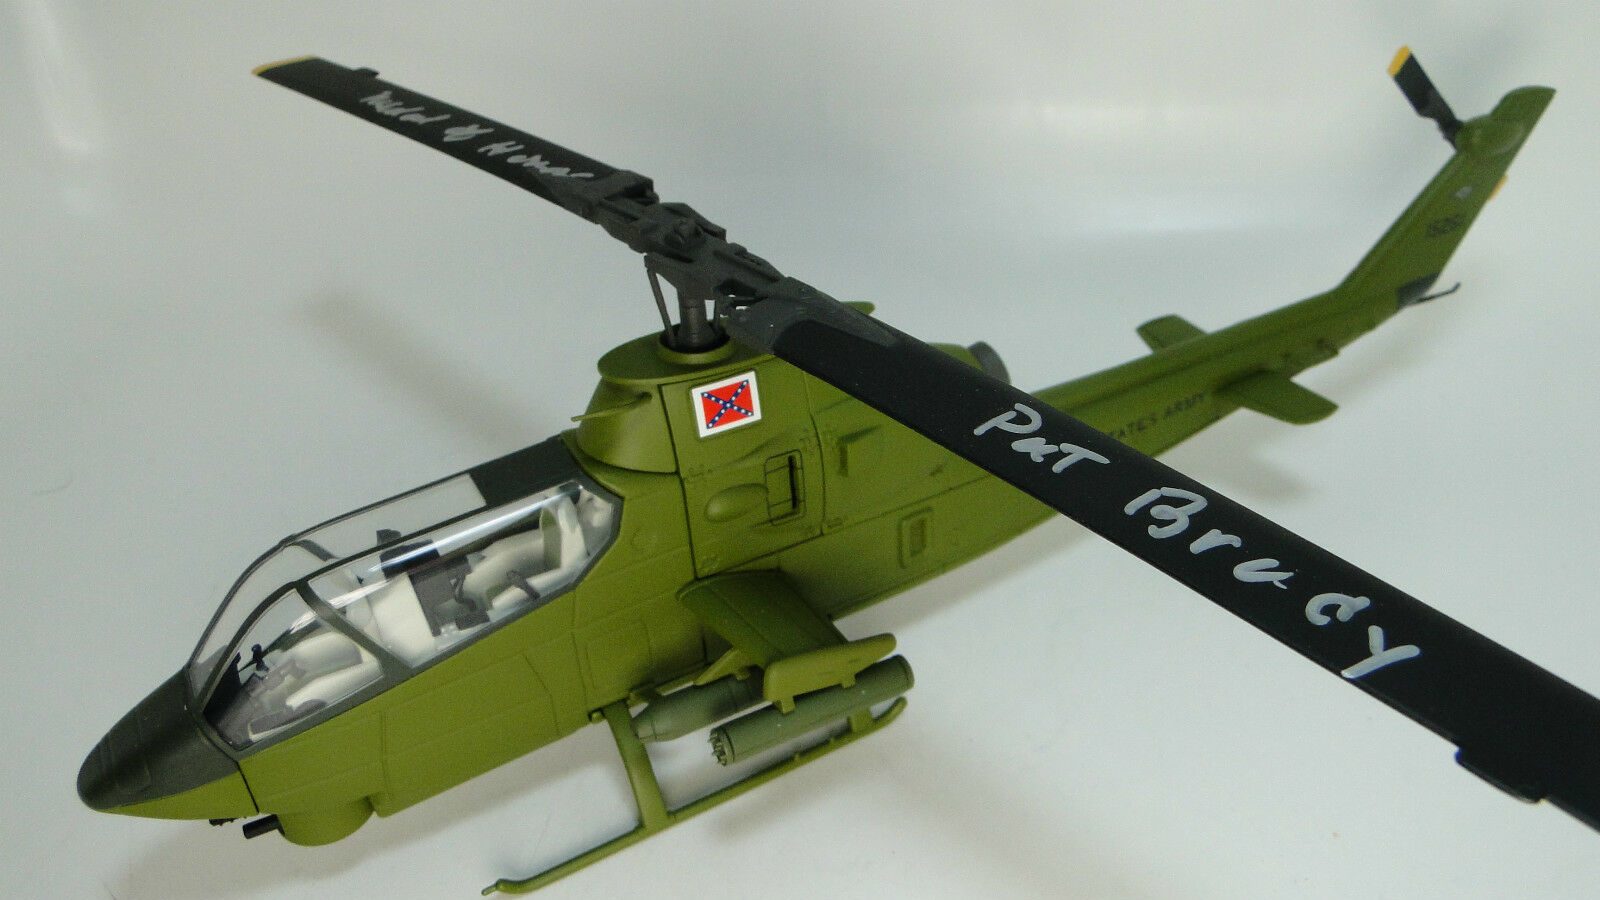 Aircraft Airplane Military Model Diecast Huey Helicopter Cobra Snake Armor 1 48